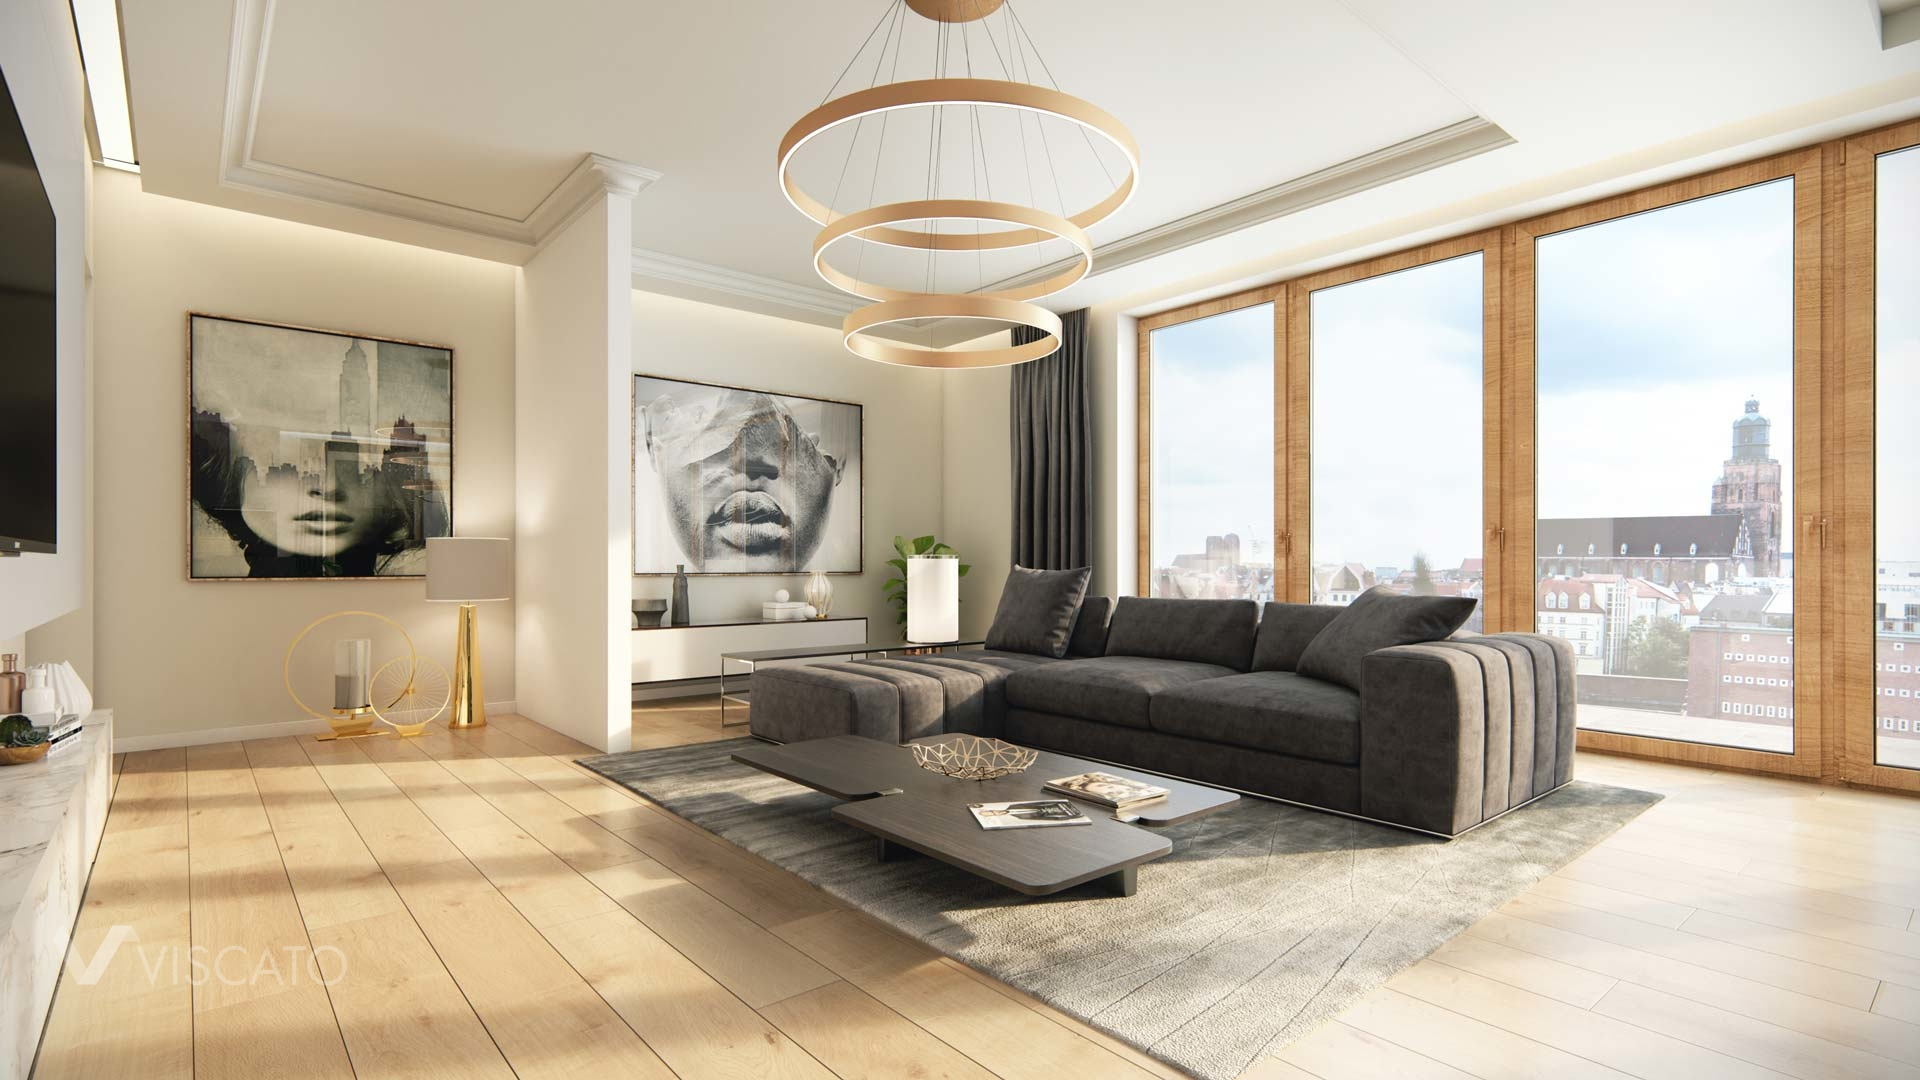 3D interior visualization of a luxurious living room, Viscato